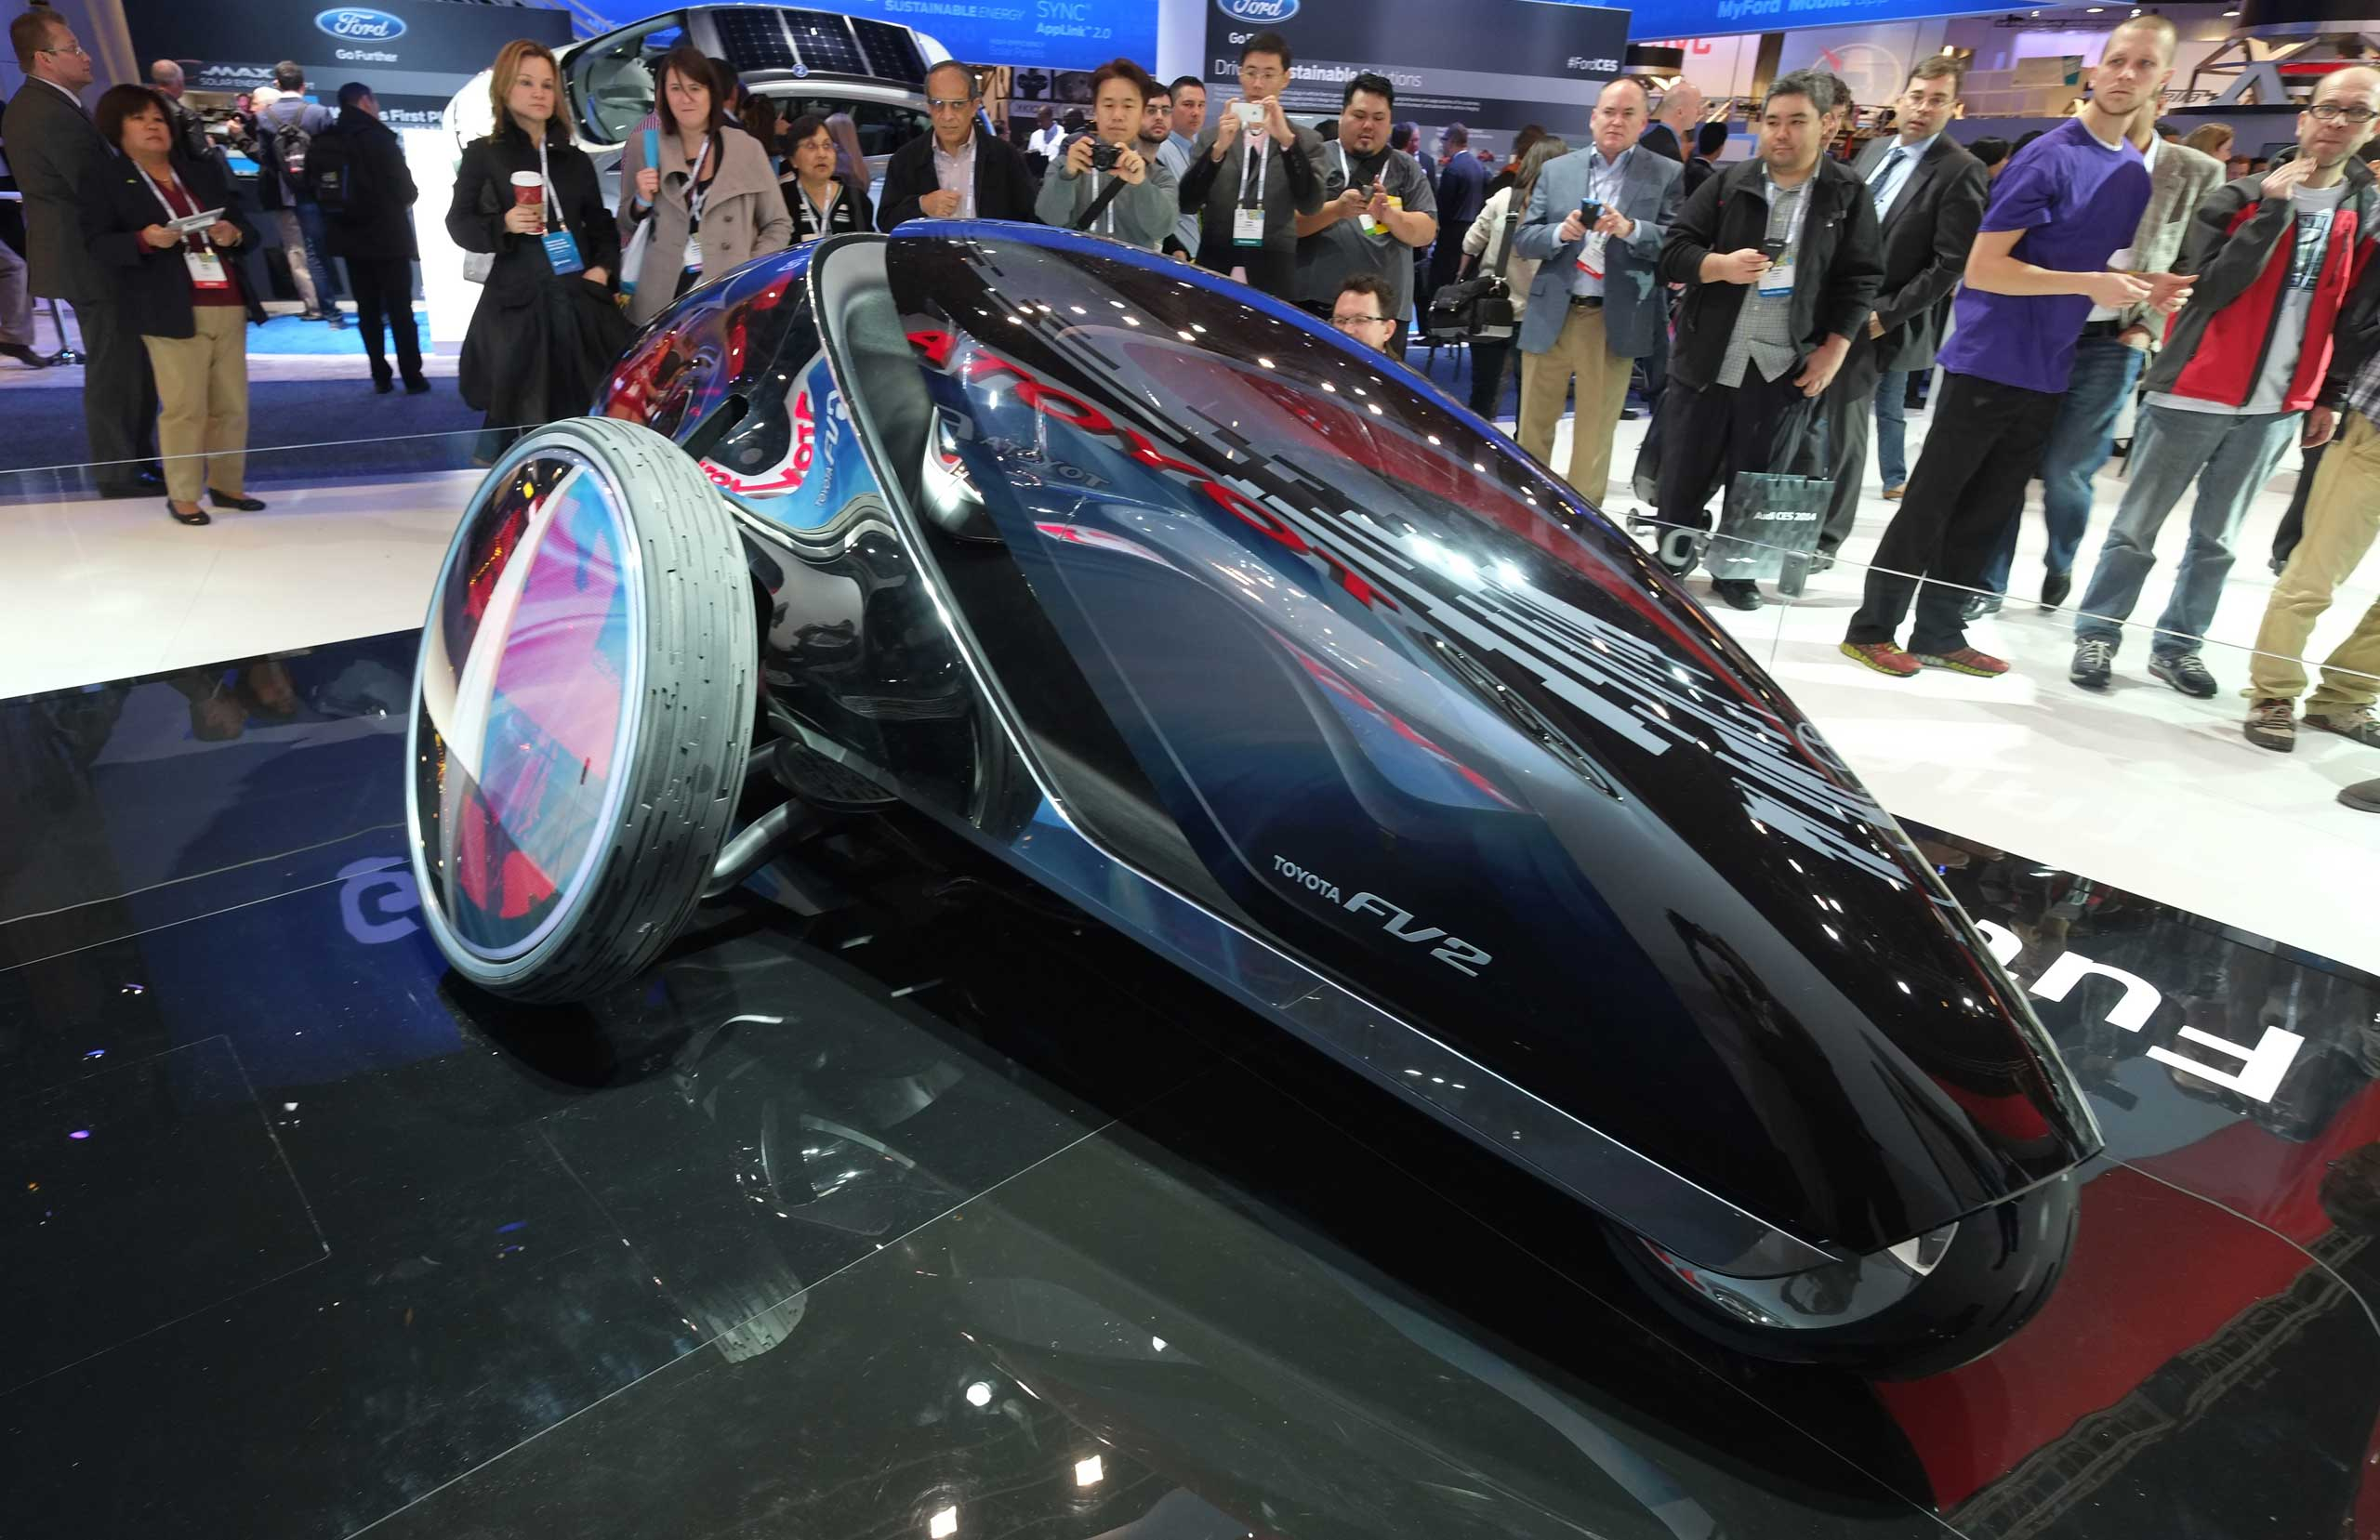 One day, we'll all finally get to ride those light-cycles from <em>Tron</em>. For now, there's Toyota's FV2 concept car.